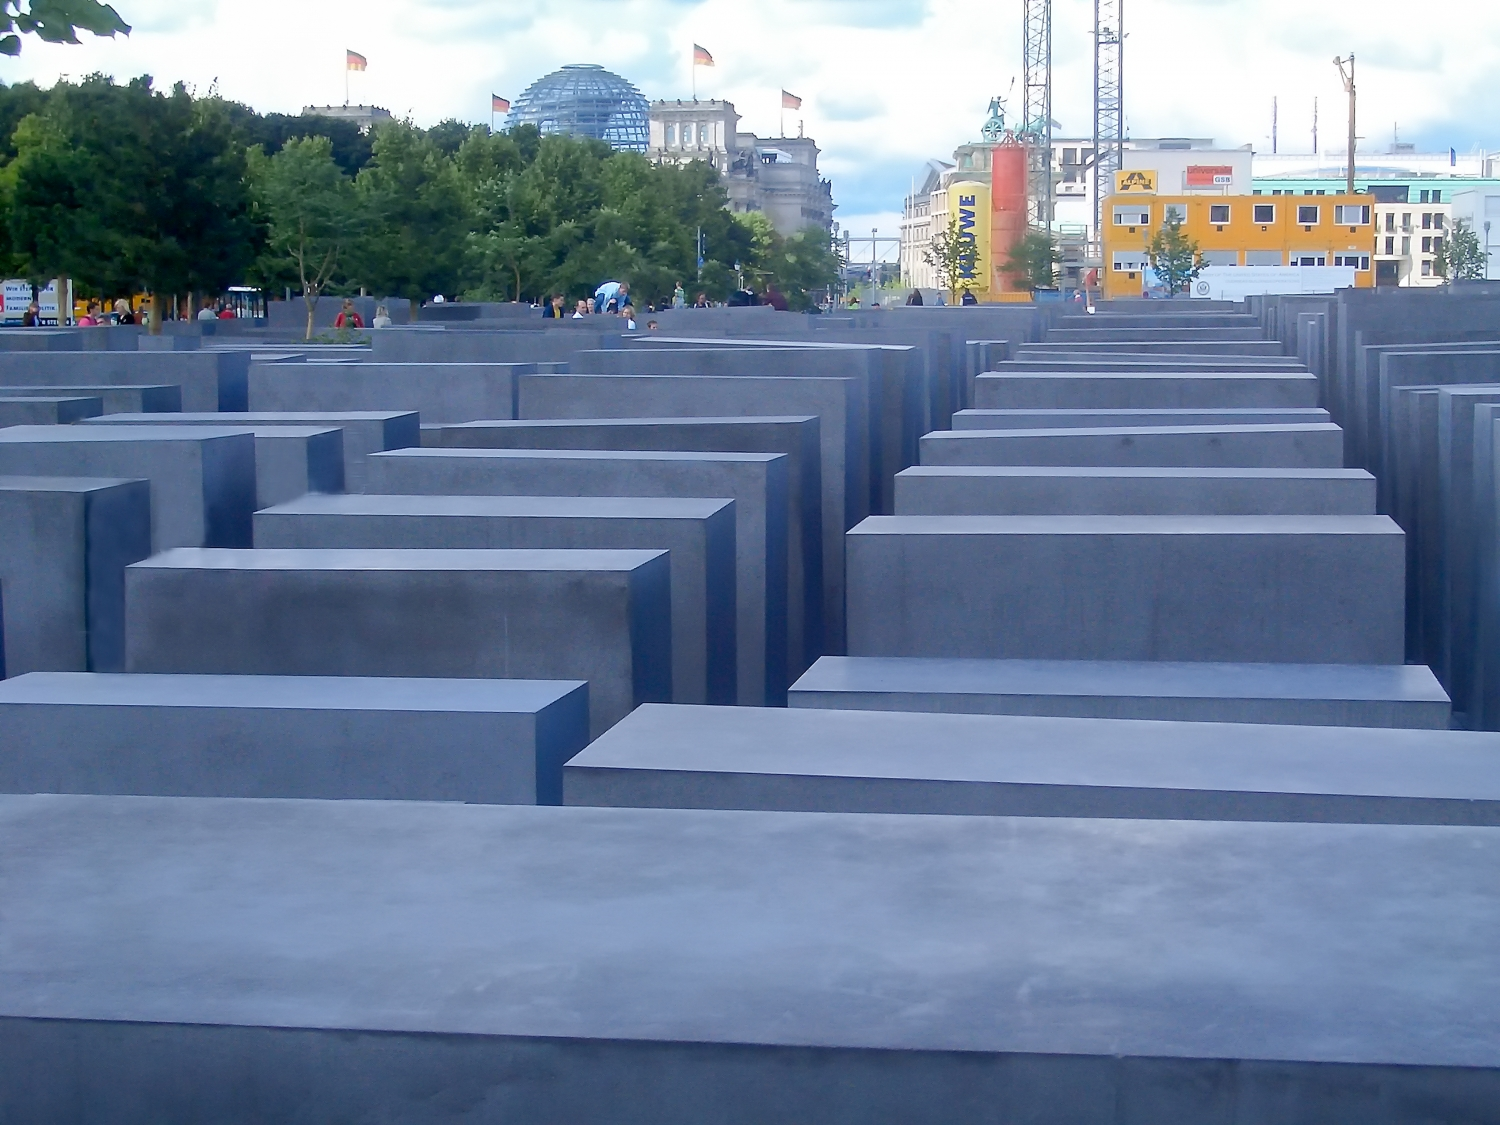 Holocaust-Mahnmal, Memorial to the Murdered Jews of Europe